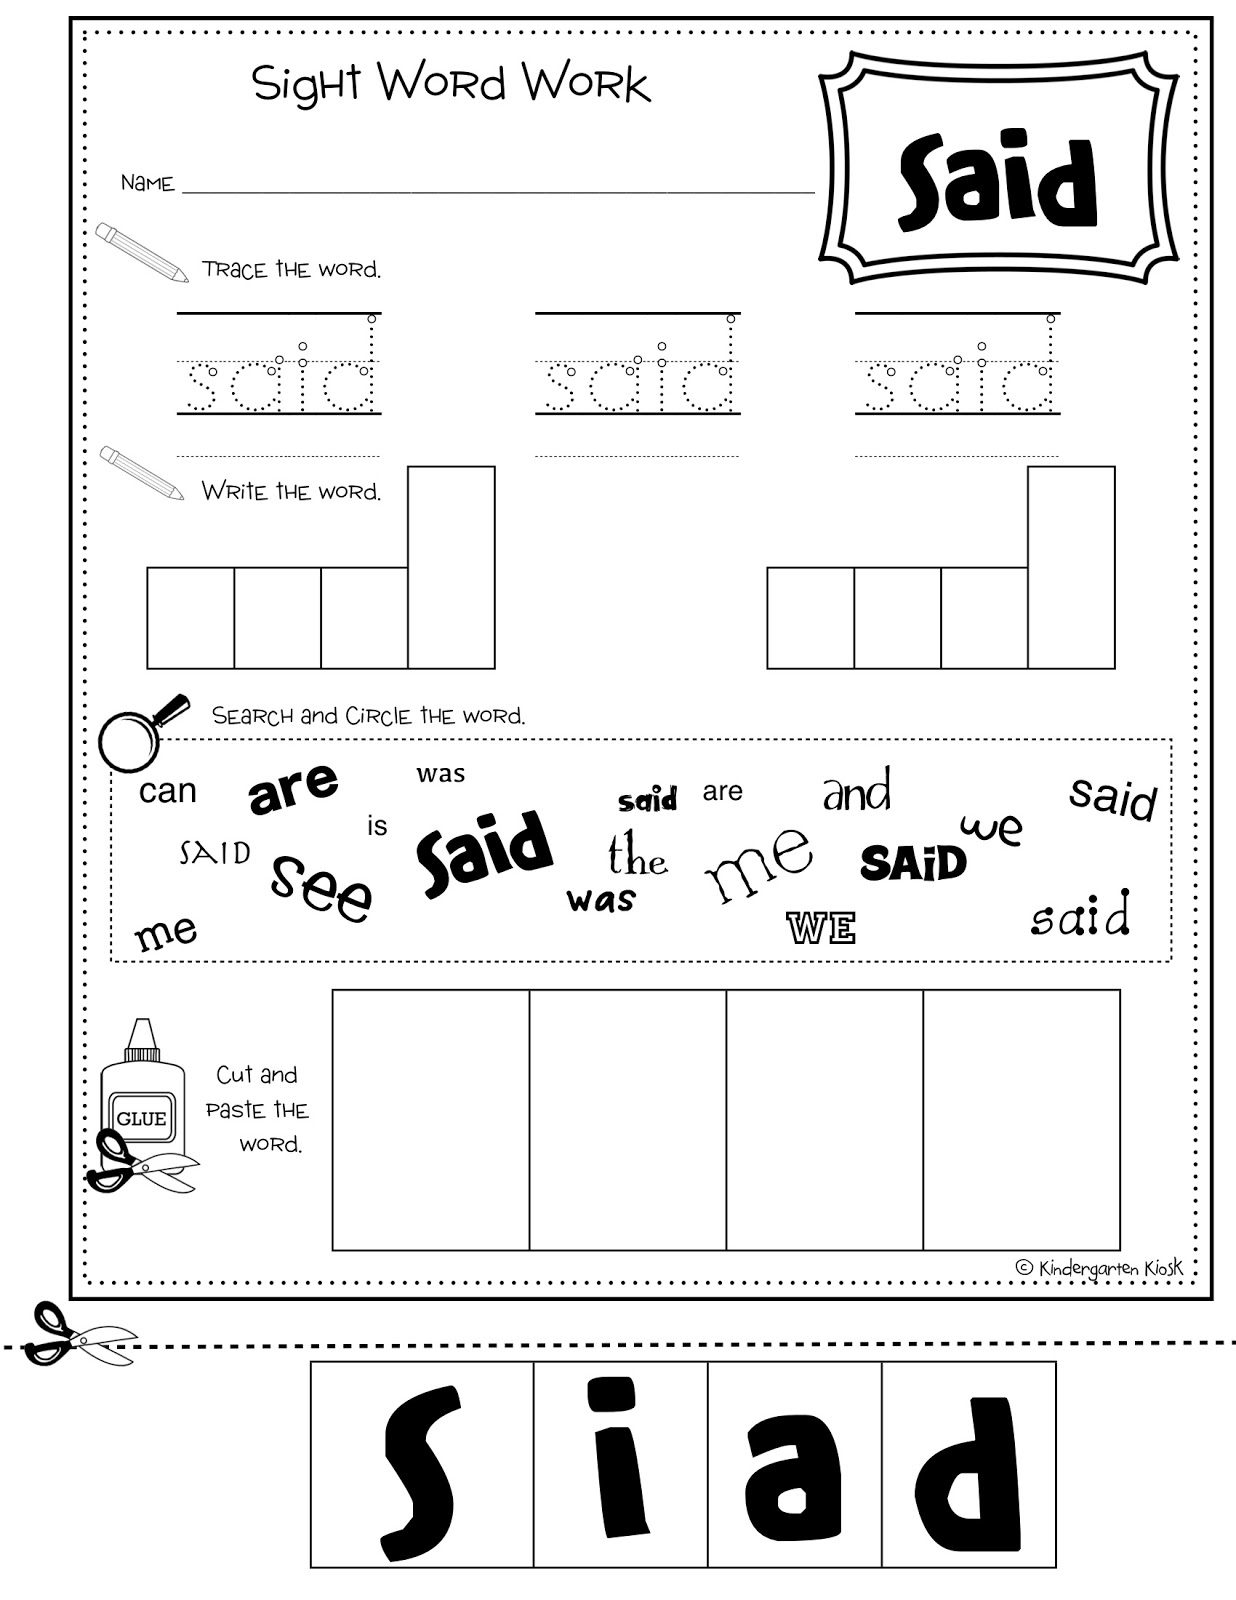 Kindergarten printable Kiosk: Multi  Word like Sight sight free worksheets Workbook Task word